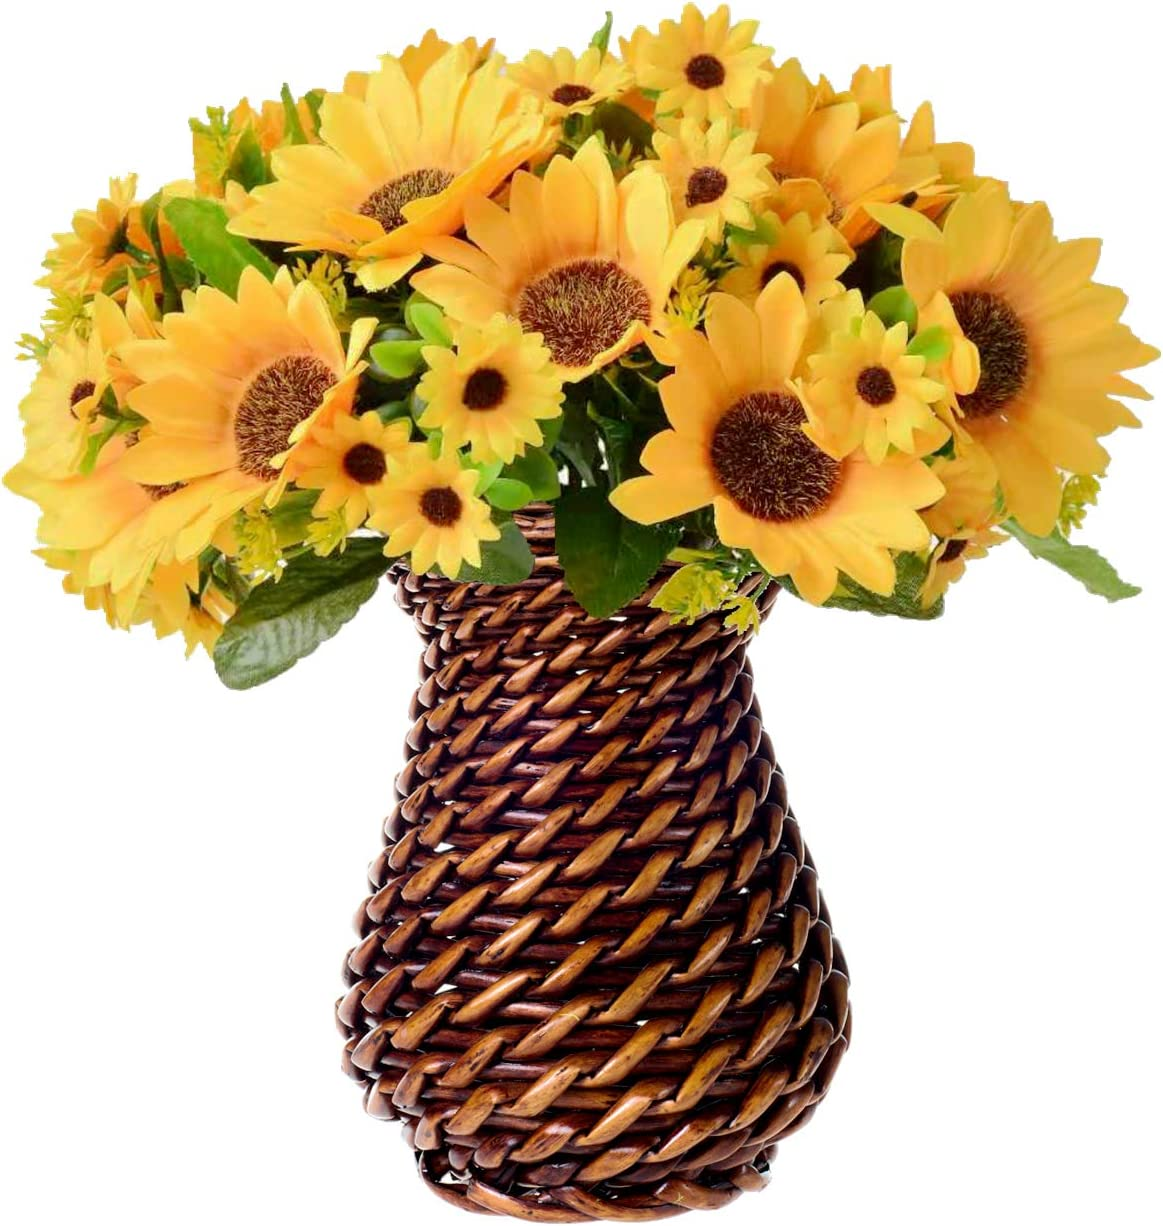 N/ A Artificial Sunflower with Handmade Rattan Vase, Fake Silk Flowers in Vase Decoration for Table Home Office Wedding (Brownish Red Rattan-1)